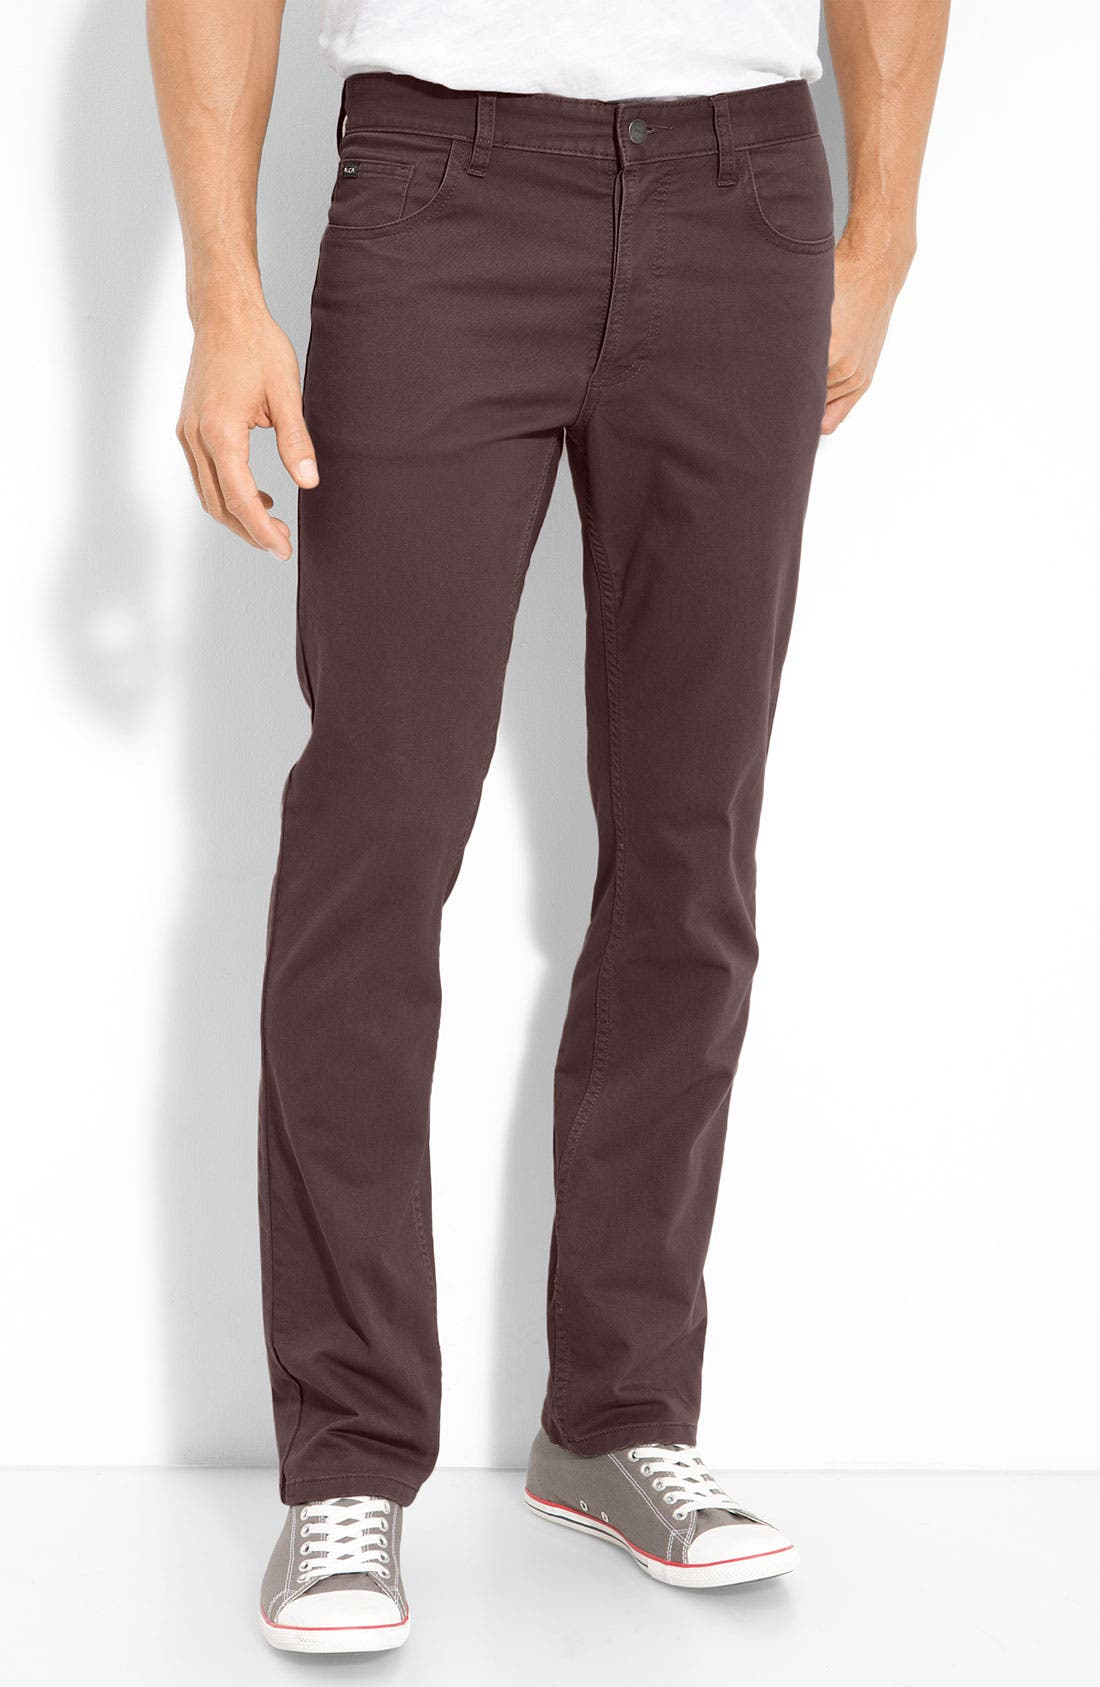 Main Image - RVCA 'Stay' Slim Fit Pants